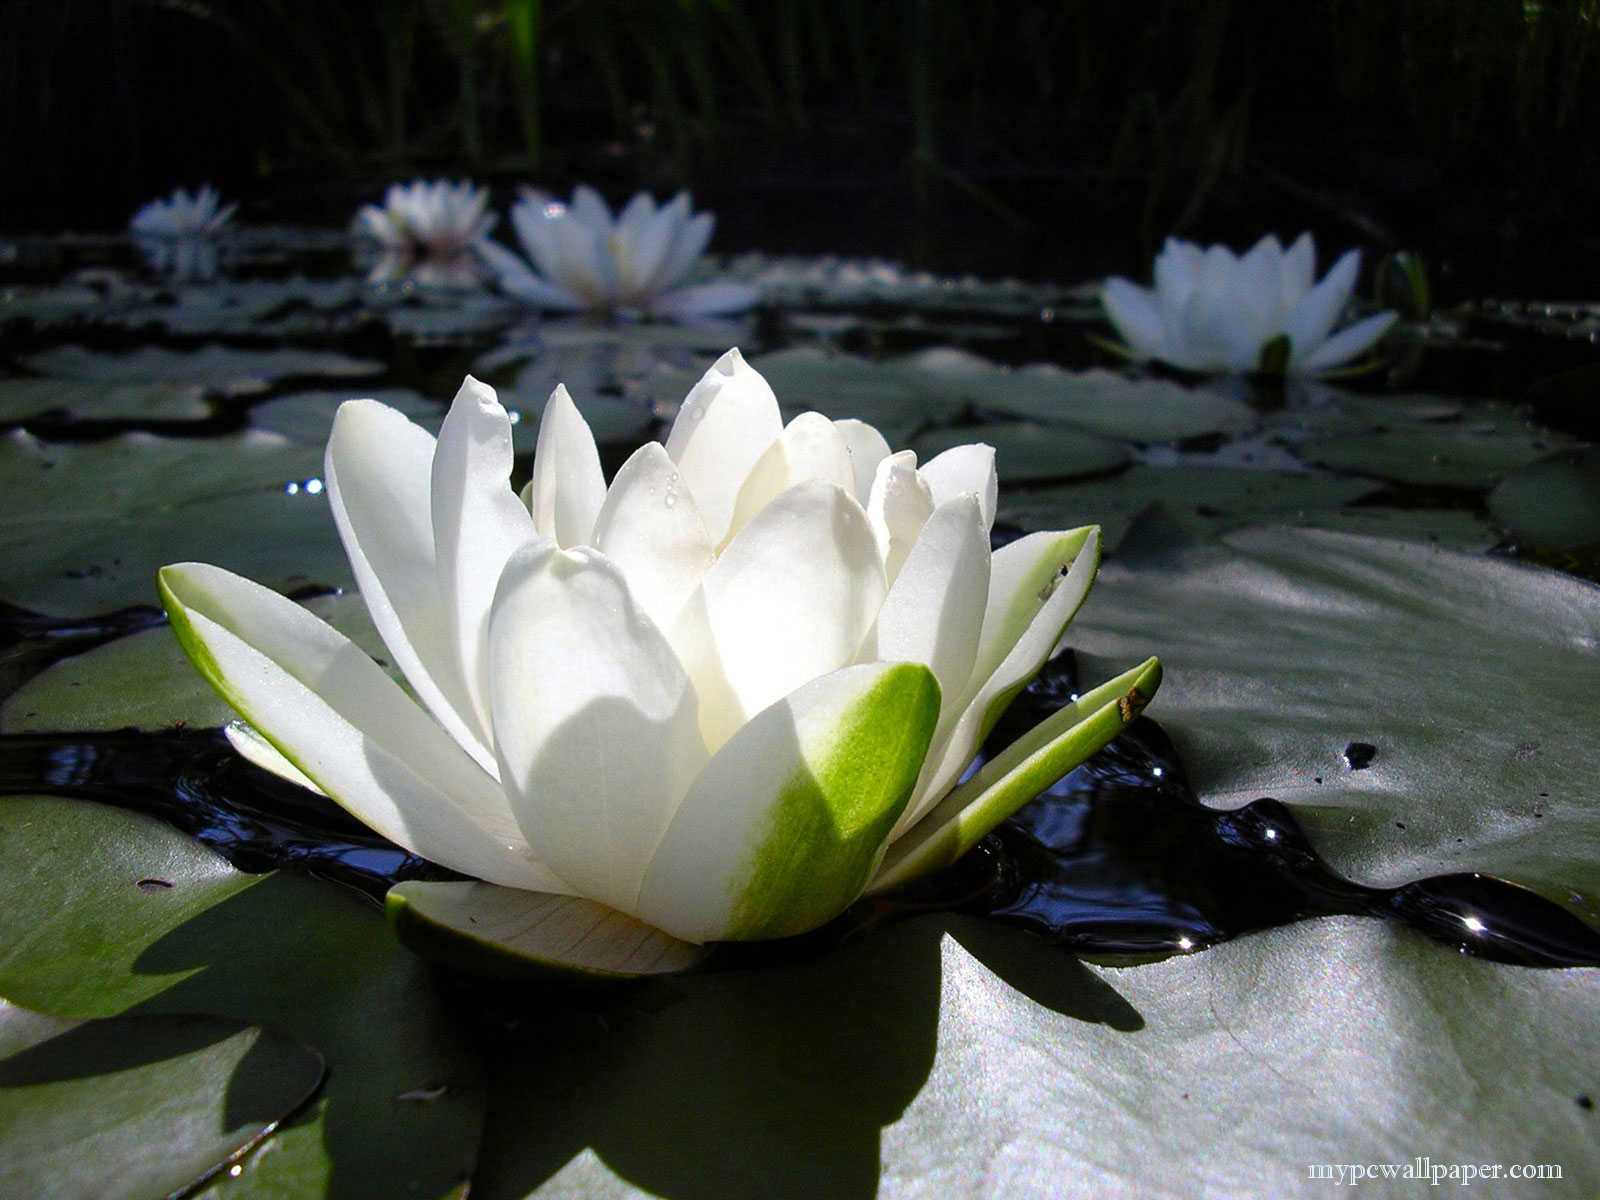 Symbolic Meaning of Lotus Flower